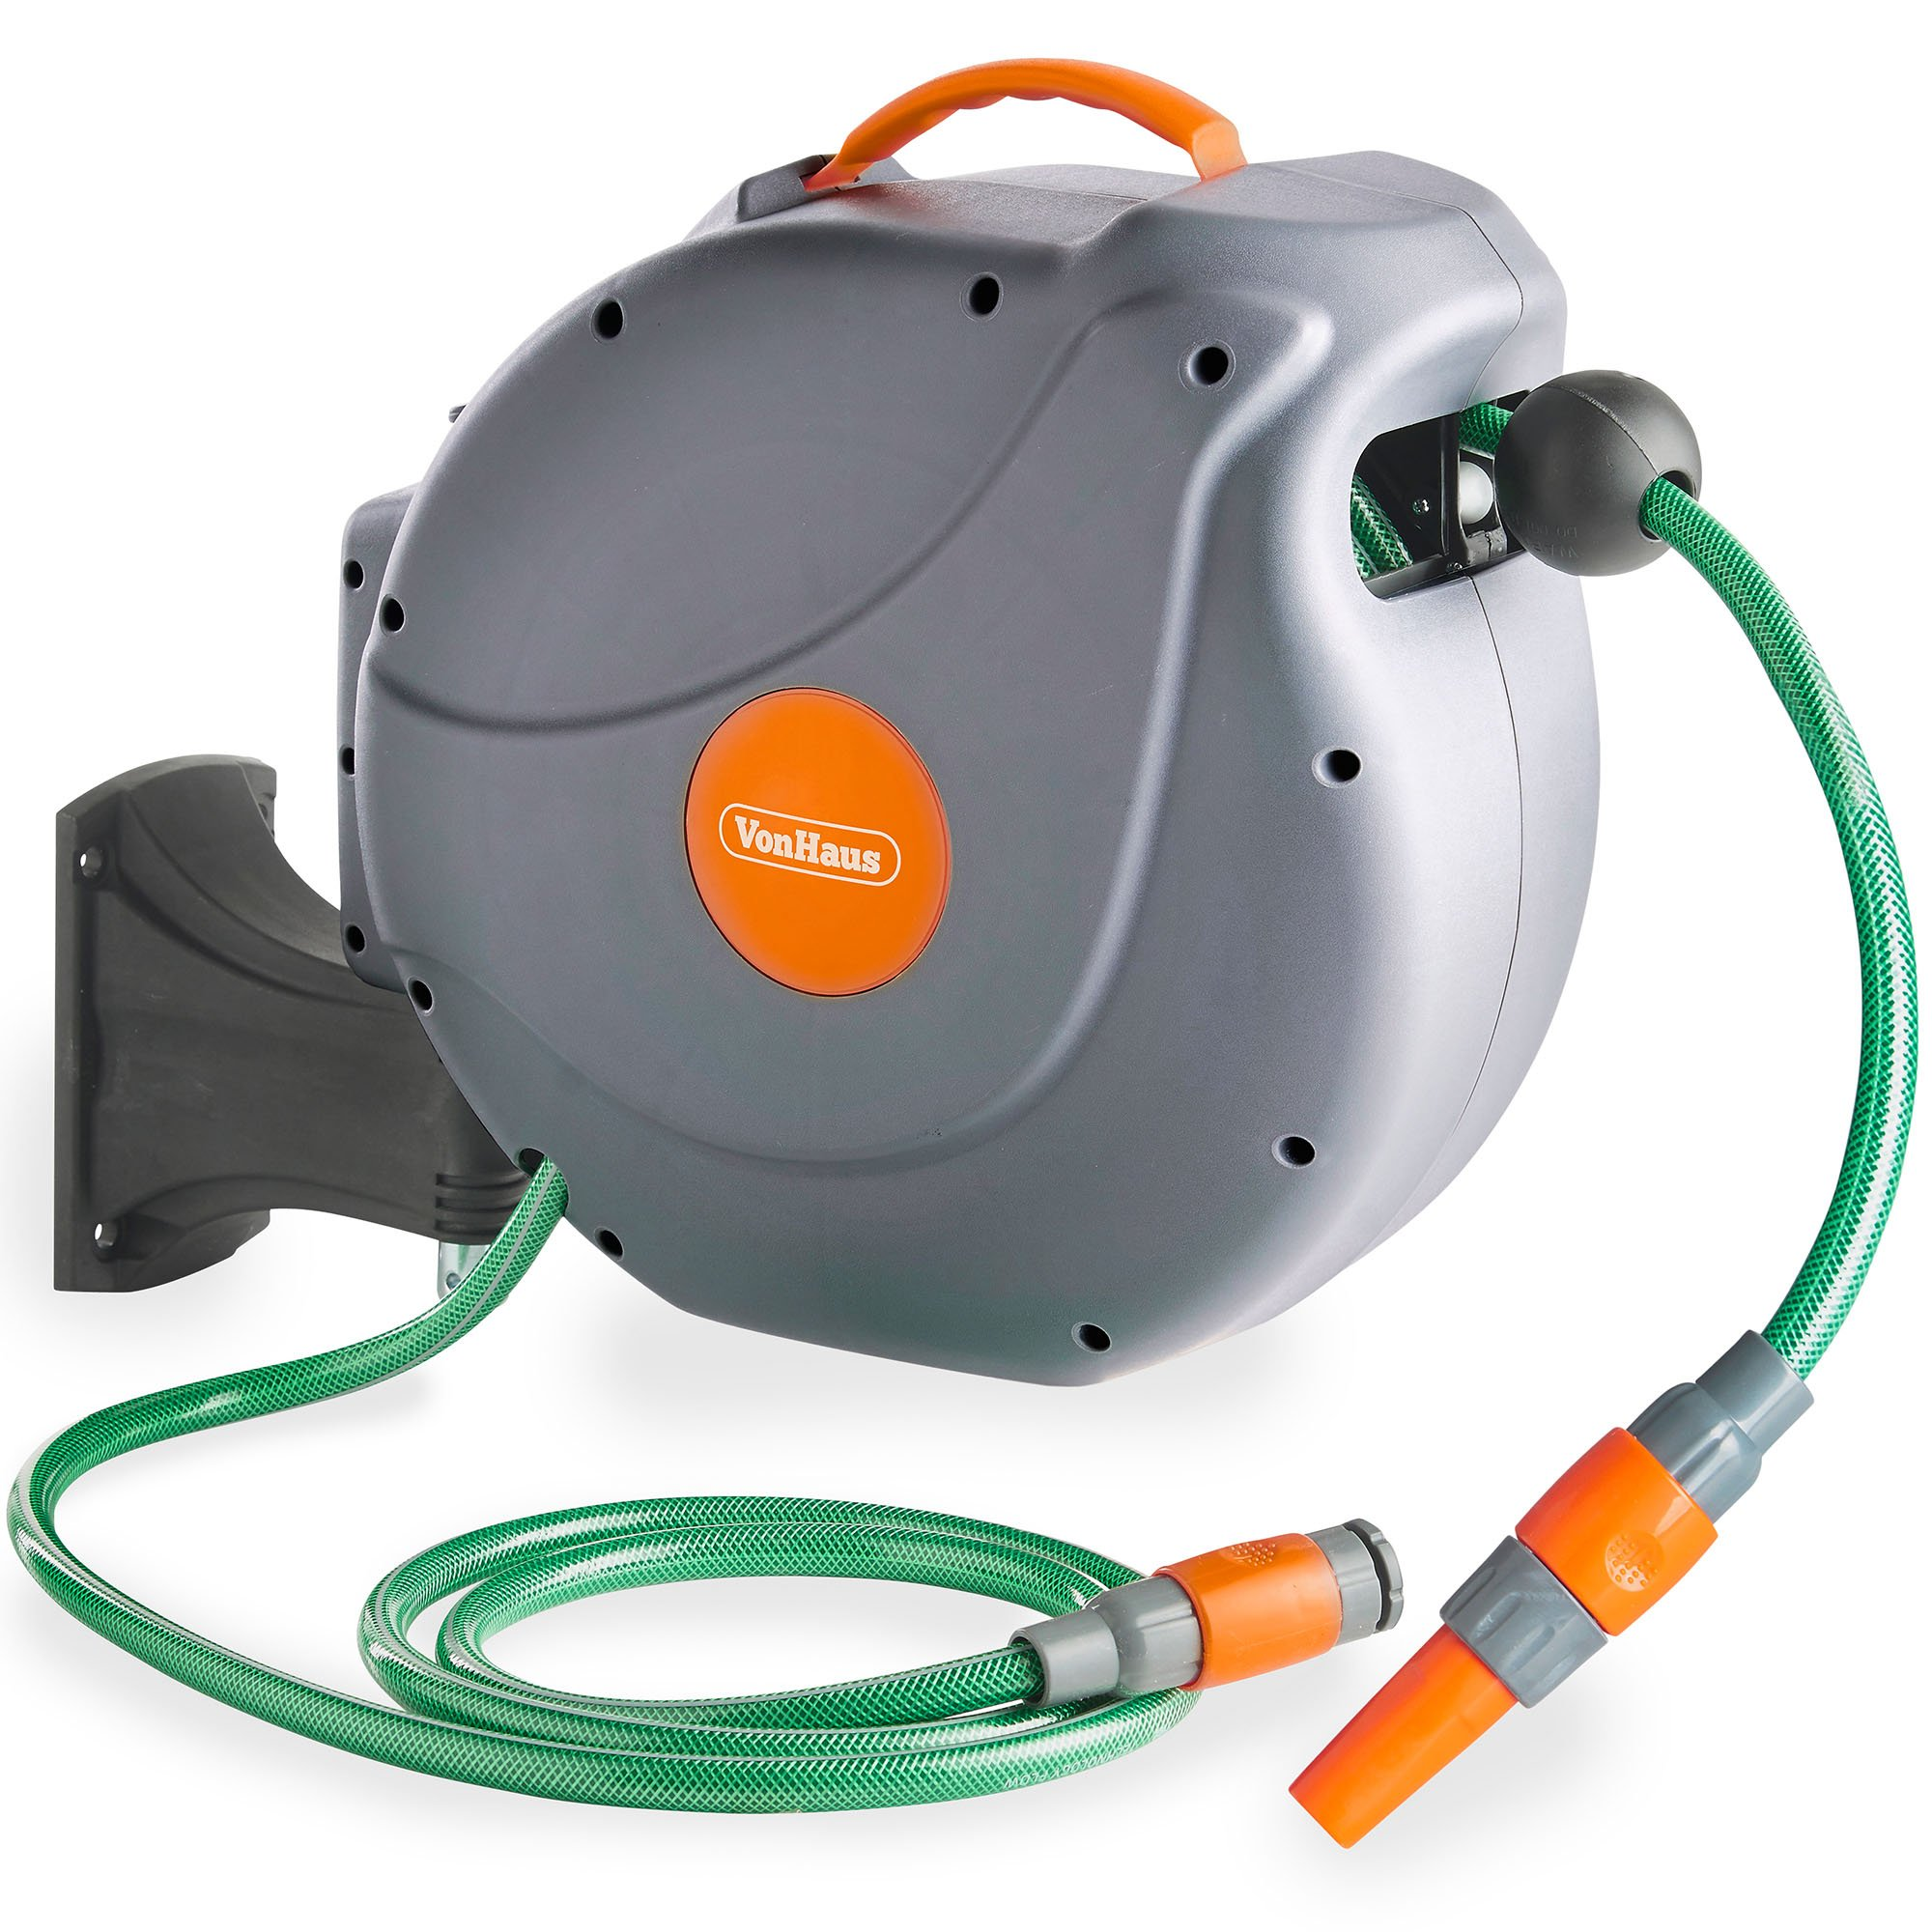 VonHaus Hose Reel - 20M Auto Rewind Wall-Mounted Reel for Garden - Includes Fixings - 180° pivot